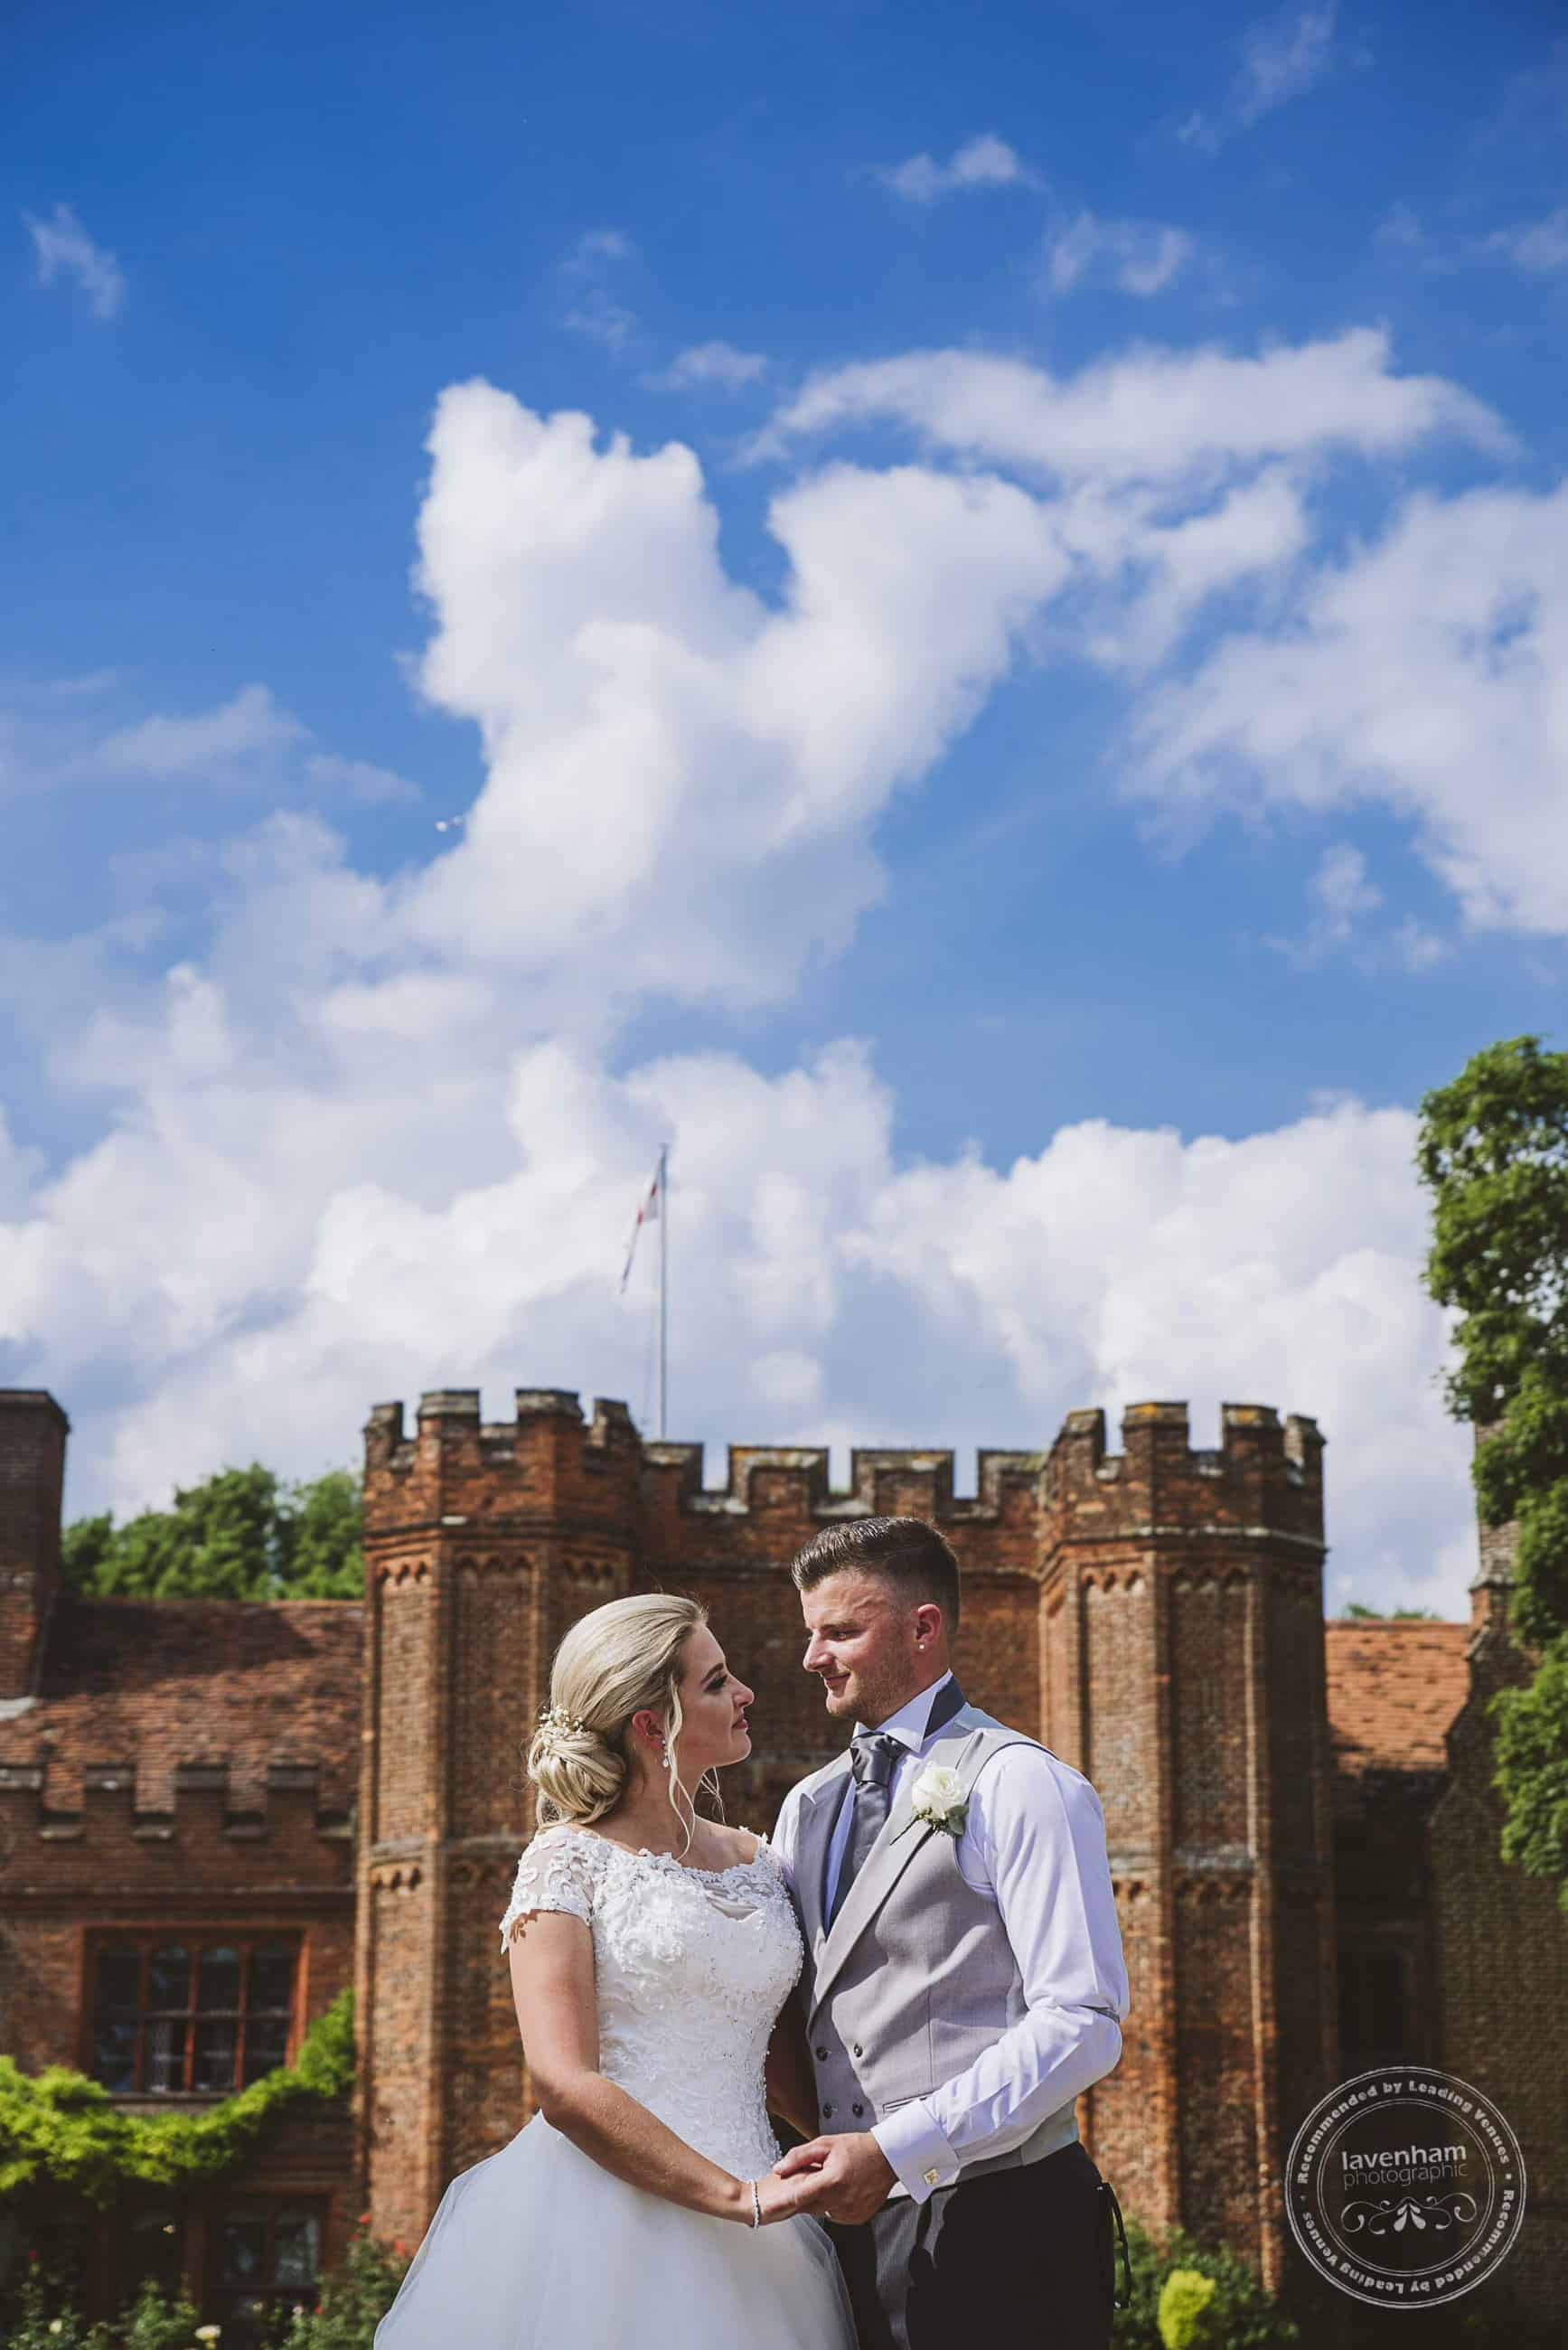 Wonderful blue sky over Leez Priory, a dramatic composition with the bride and groom low in the frame